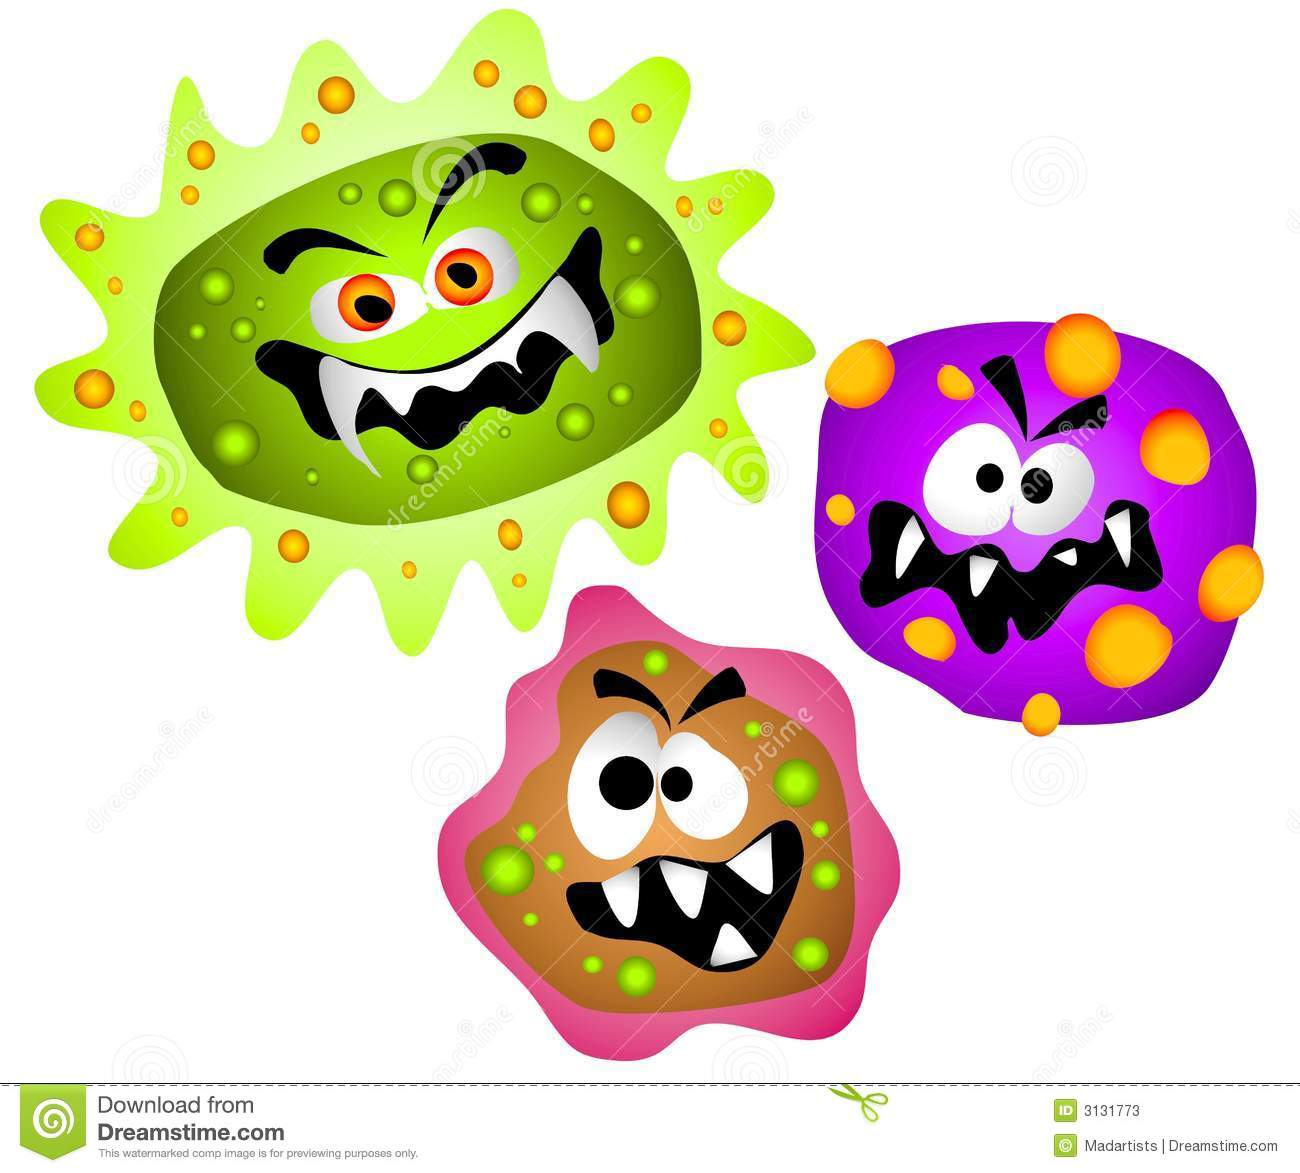 Clip Art Infection Clipart-Clip Art Infection Clipart-14